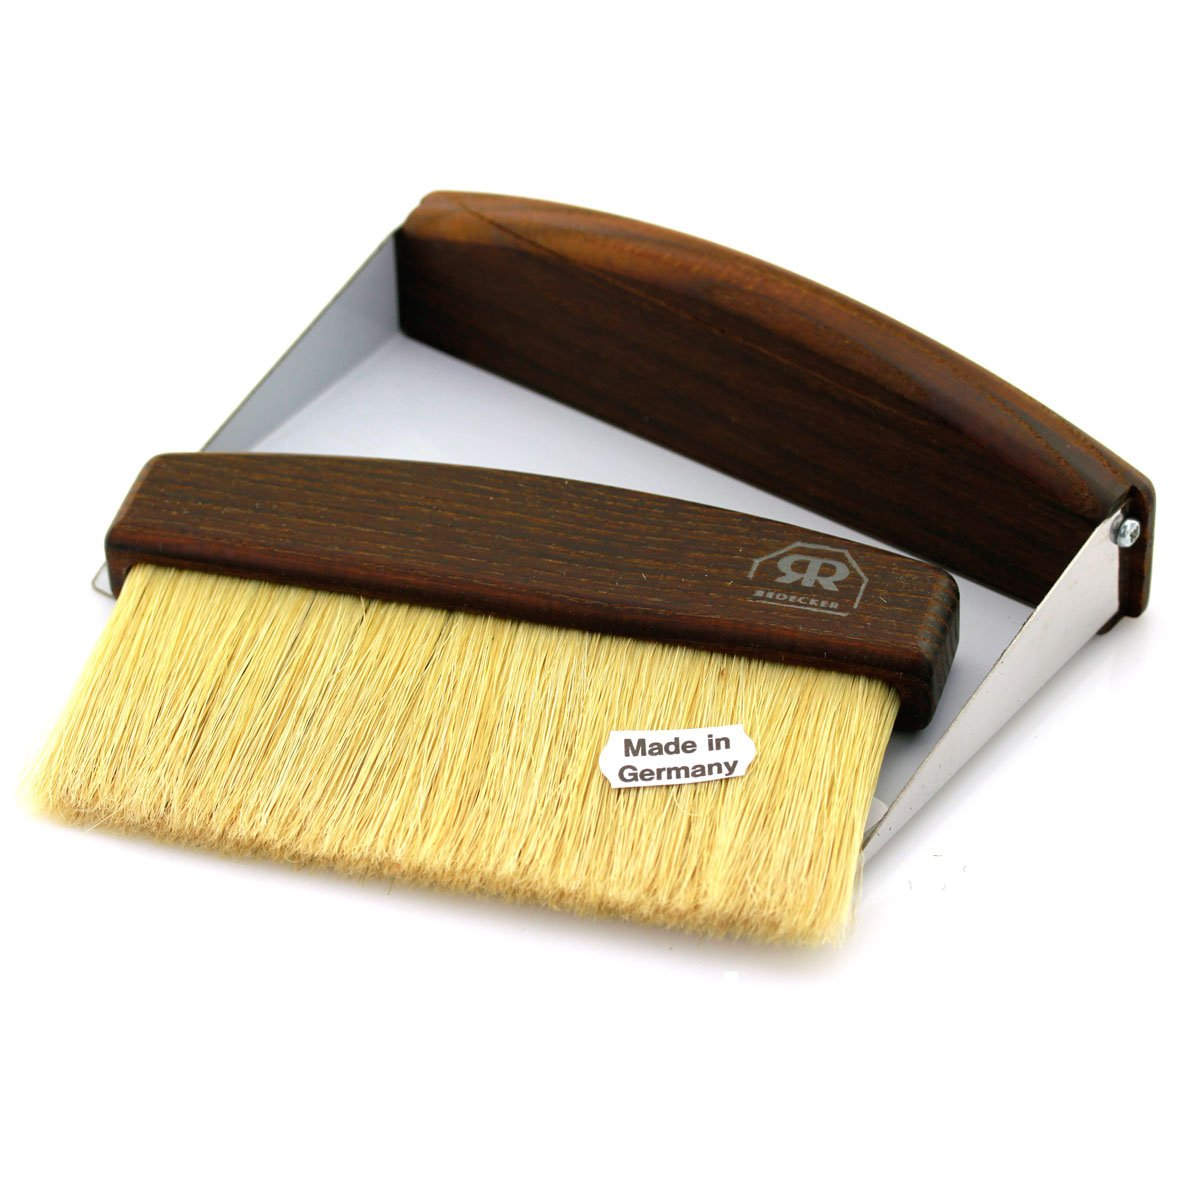 Redecker Table Sweeping Set Hand Brush Dust Pan Thermo Wood: Amazon.co.uk:  Kitchen U0026 Home